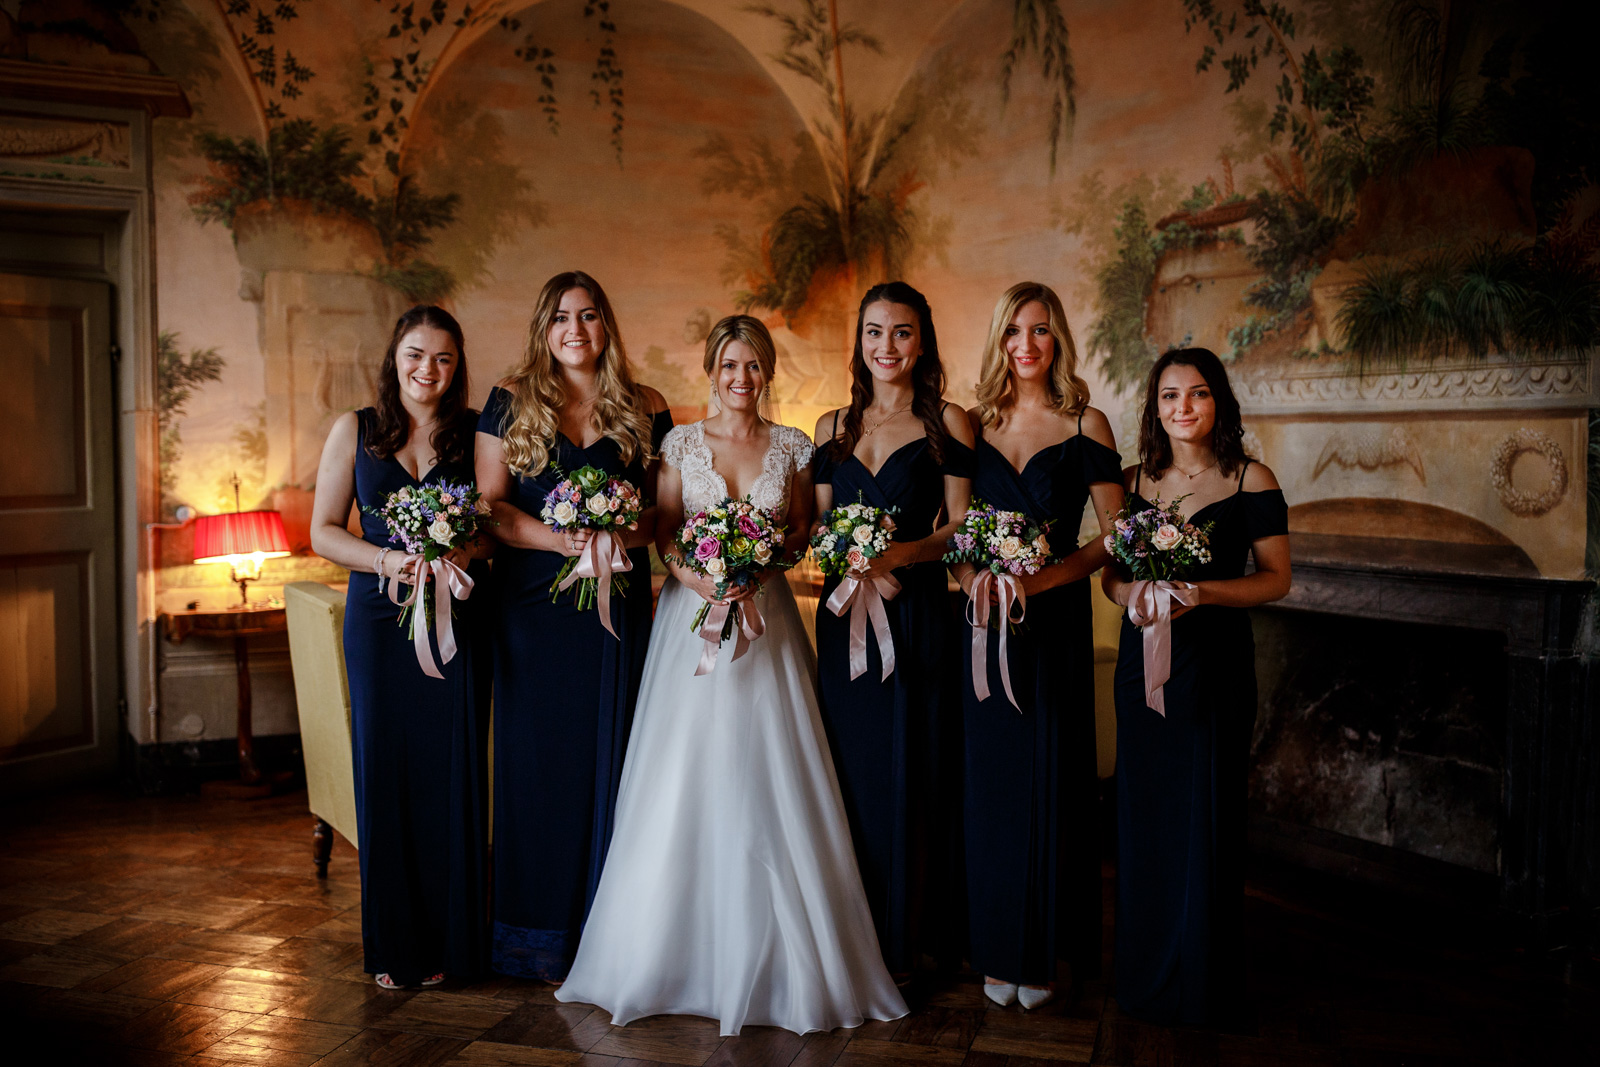 The bridal party at Villa Catignano in Siena